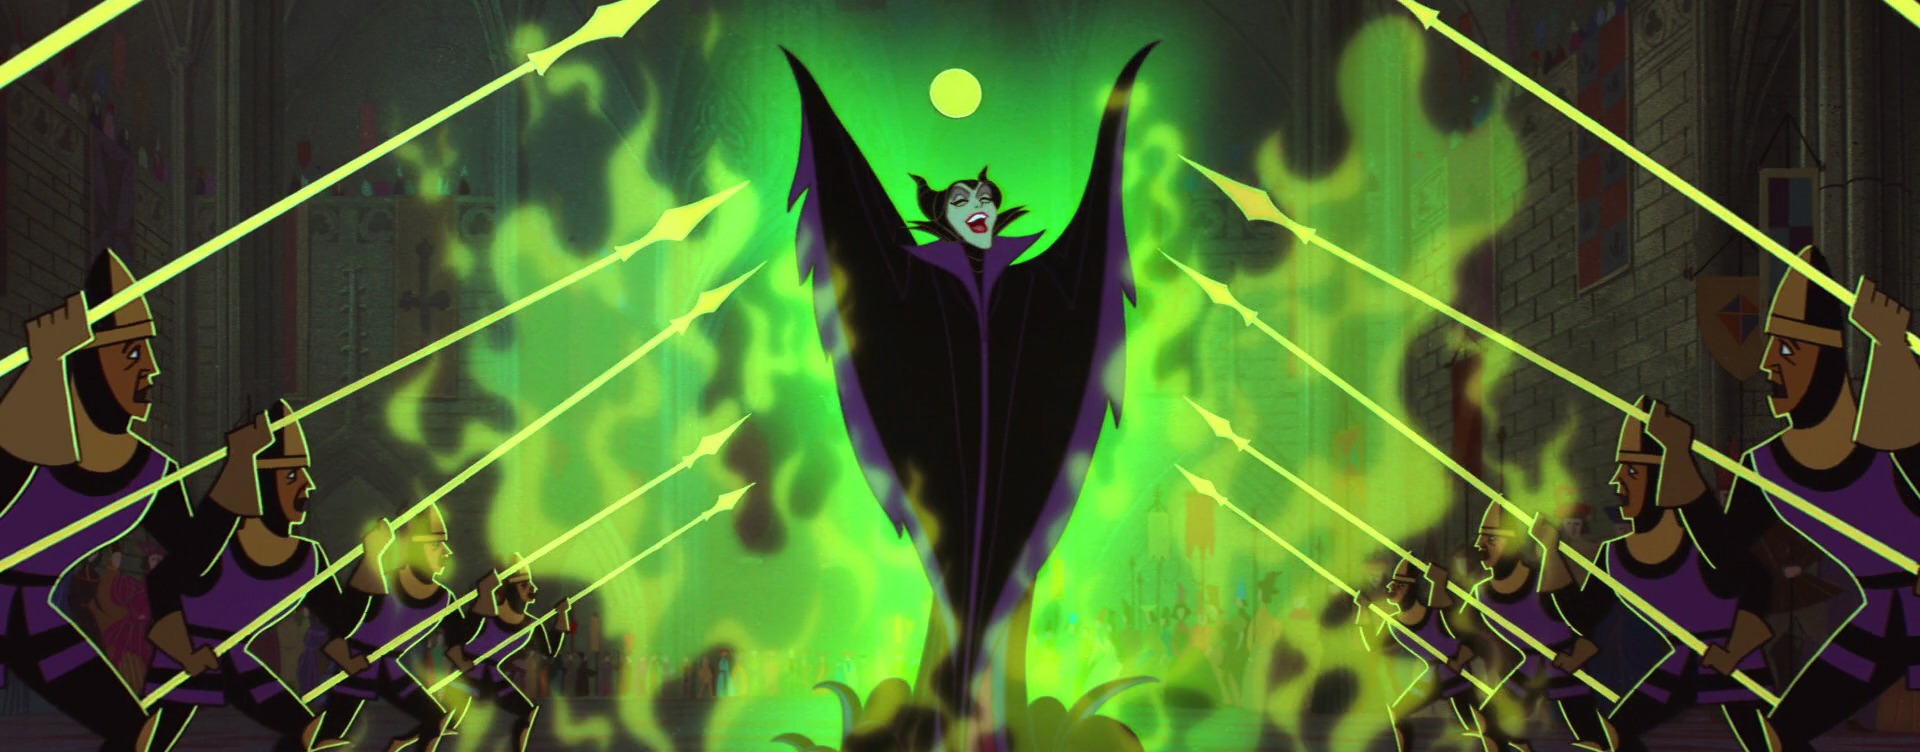 Animated Maleficent